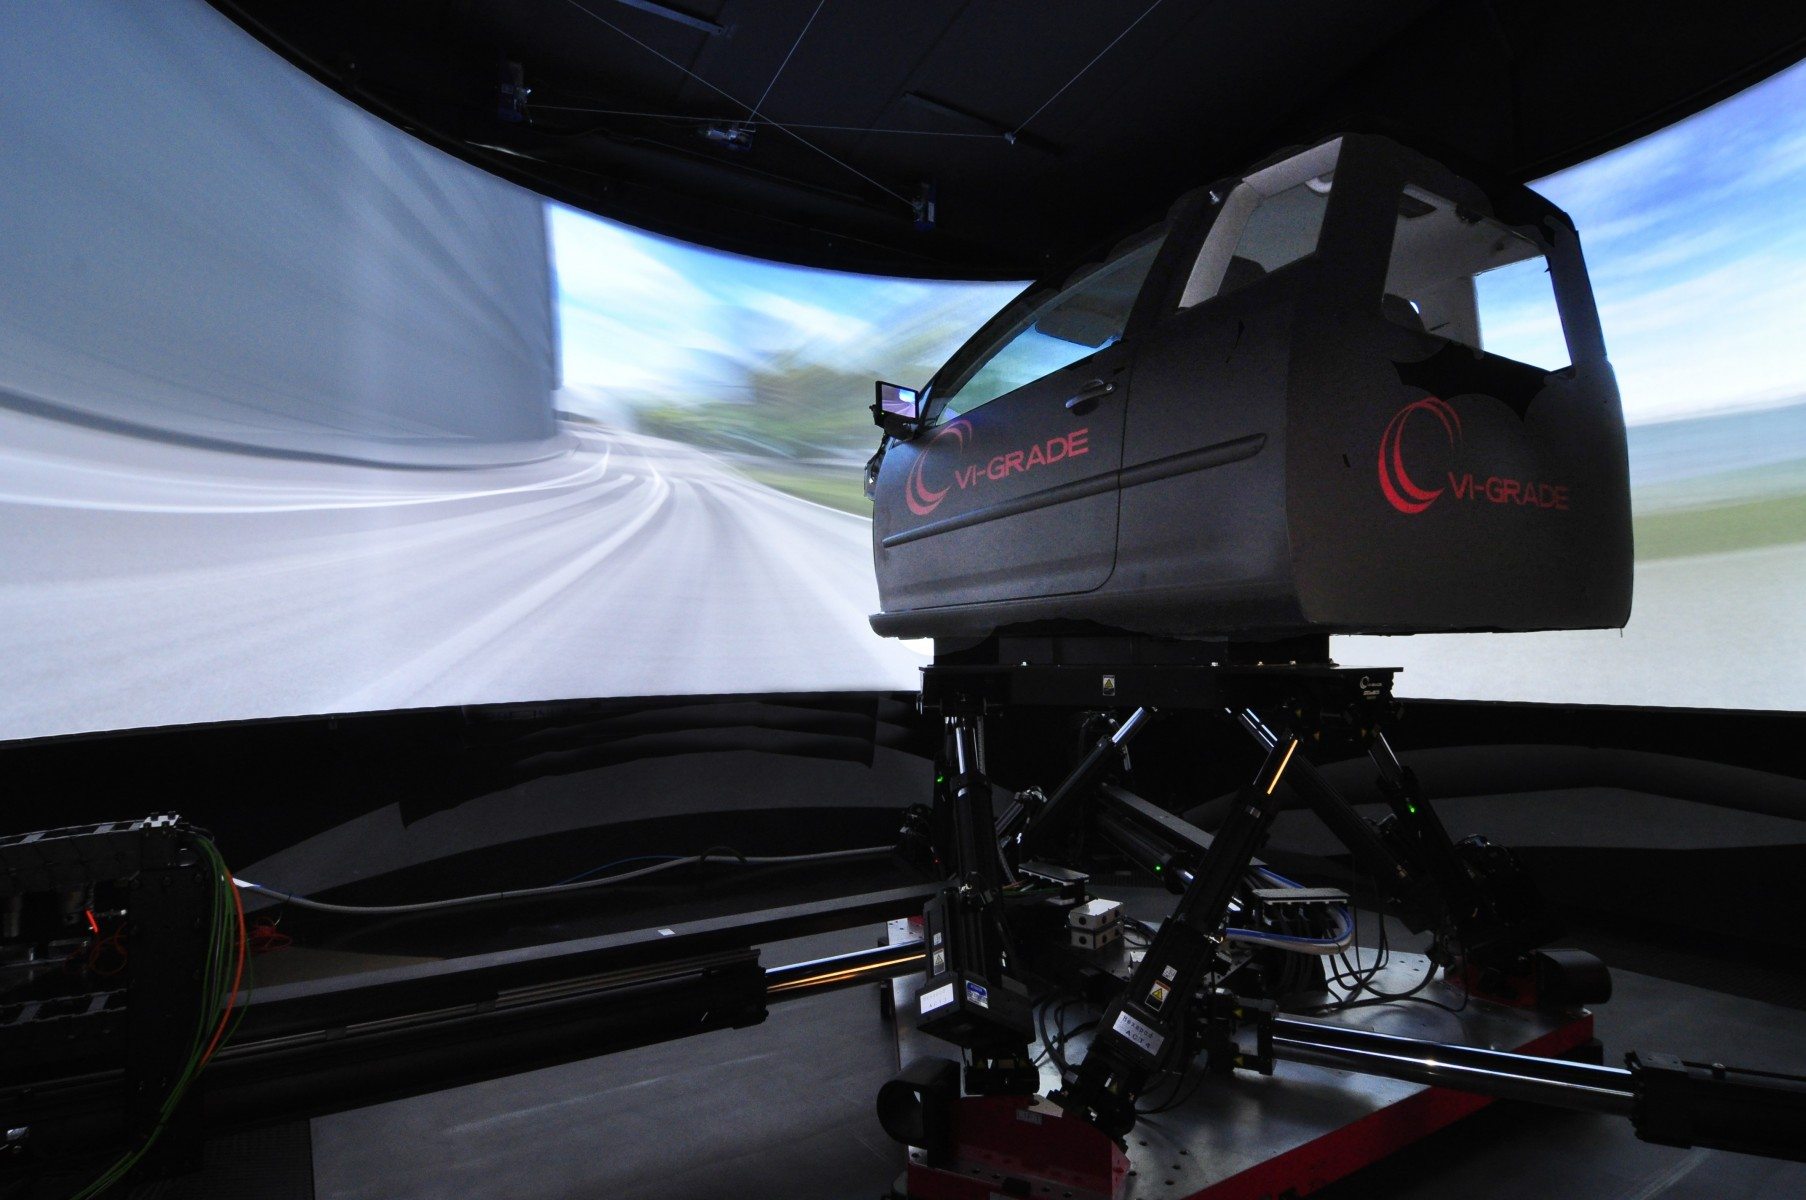 VI-grade%20DiM%20driver-in-motion%20simulator